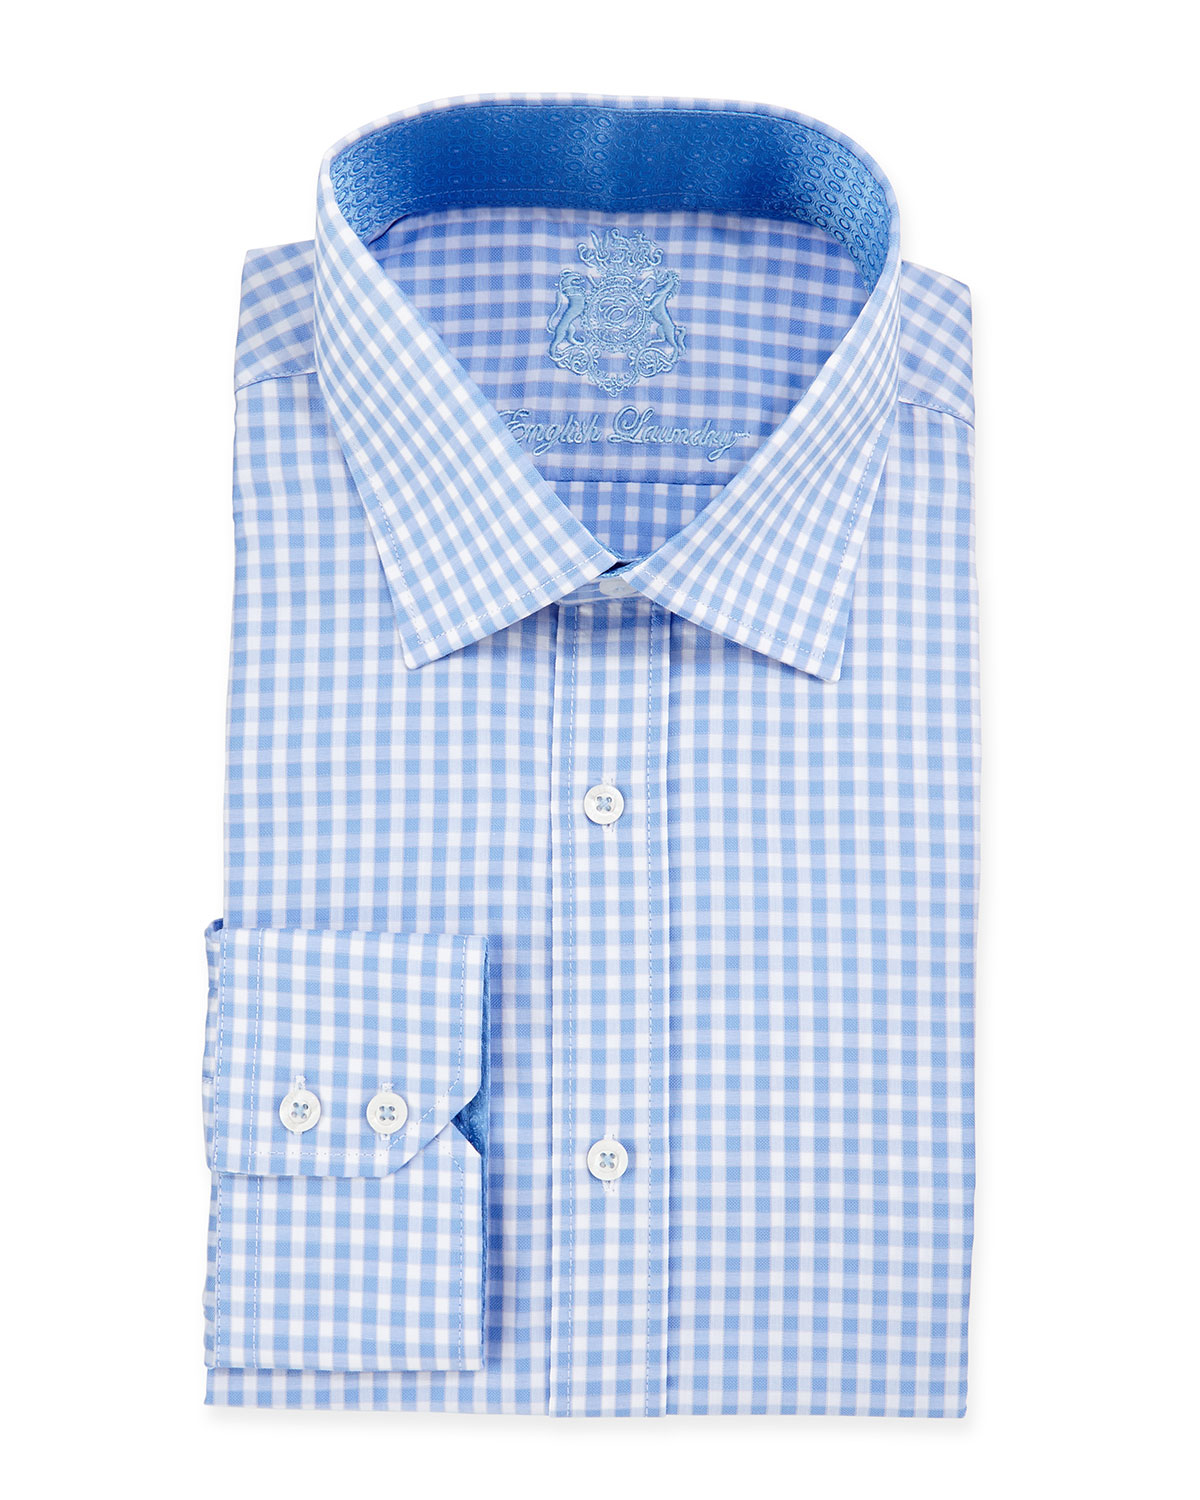 English Laundry Gingham Check Woven Dress Shirt In Blue